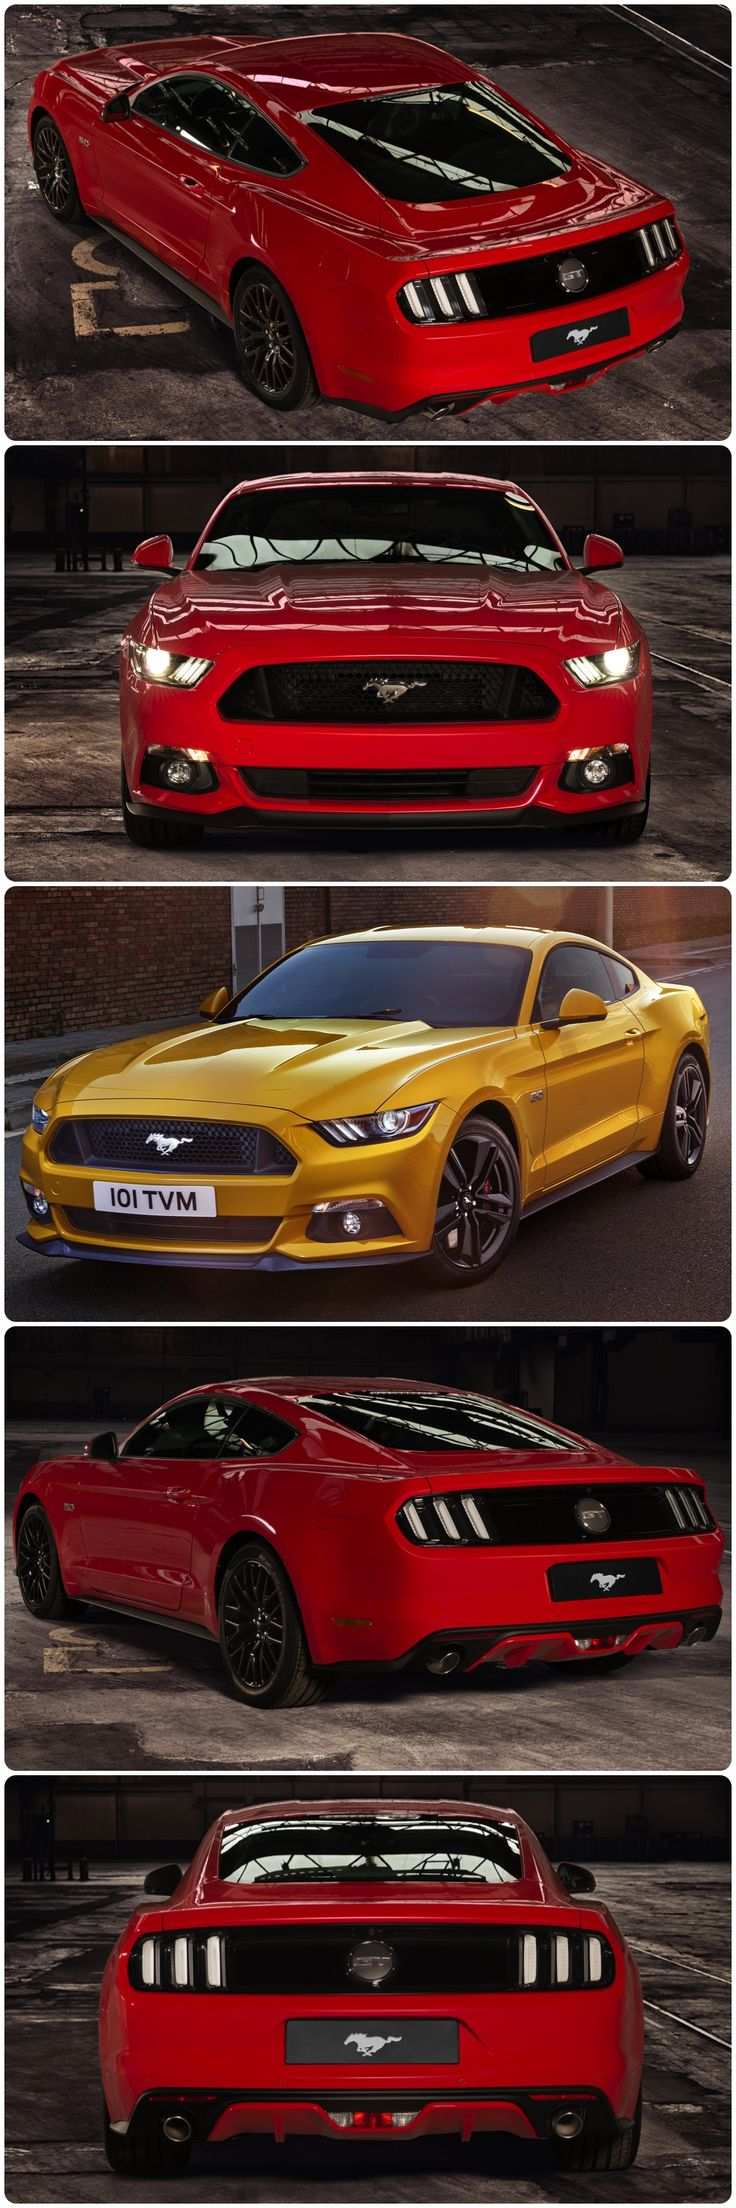 "Ford Mustang Order Stampede for Iconic Car -  ""The rush to configure Mustang online represents 50 years of pent up demand across Europe, for some people, the new Mustang is the car they have waited for their whole lives."" Roelant de Waard, vice president, Marketing, Sales and Service, Ford of Europe.  #mustang #newfordmustang #ponycar #ford"